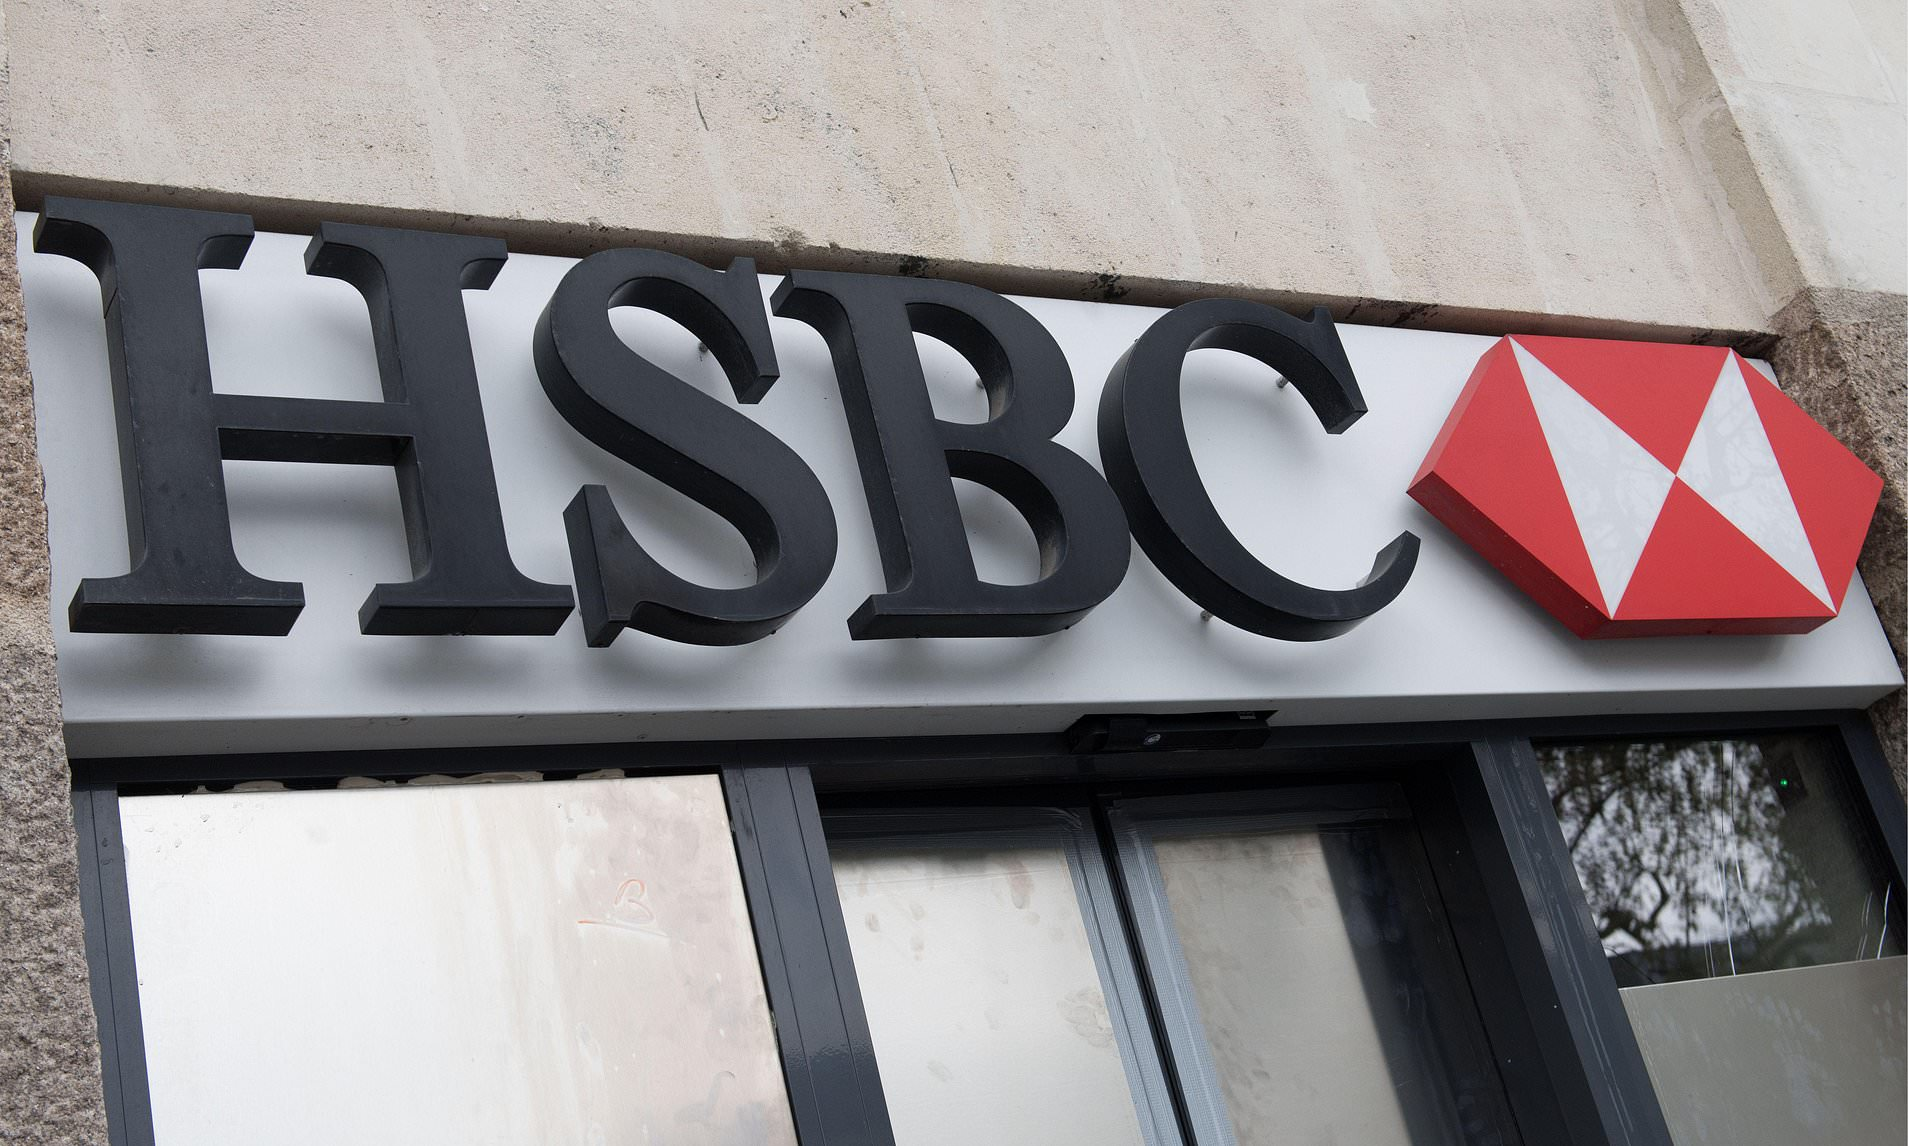 Diy Bank Holiday Offers Best Current Account Deals Hsbc Brings Back 175 Cash